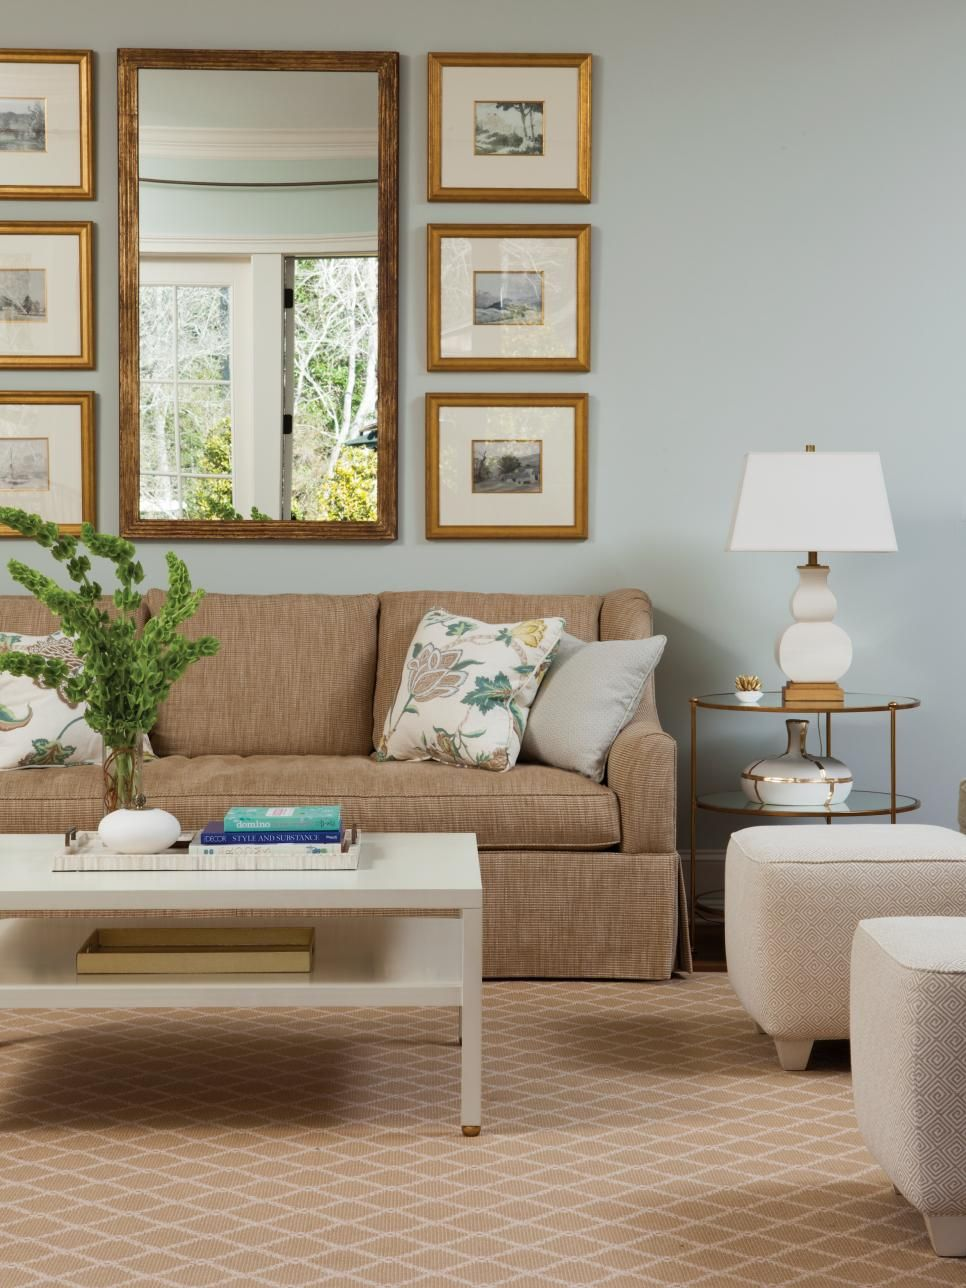 blue walls living room inexpensive small ideas rooms viewer remodel casual coastal decor with